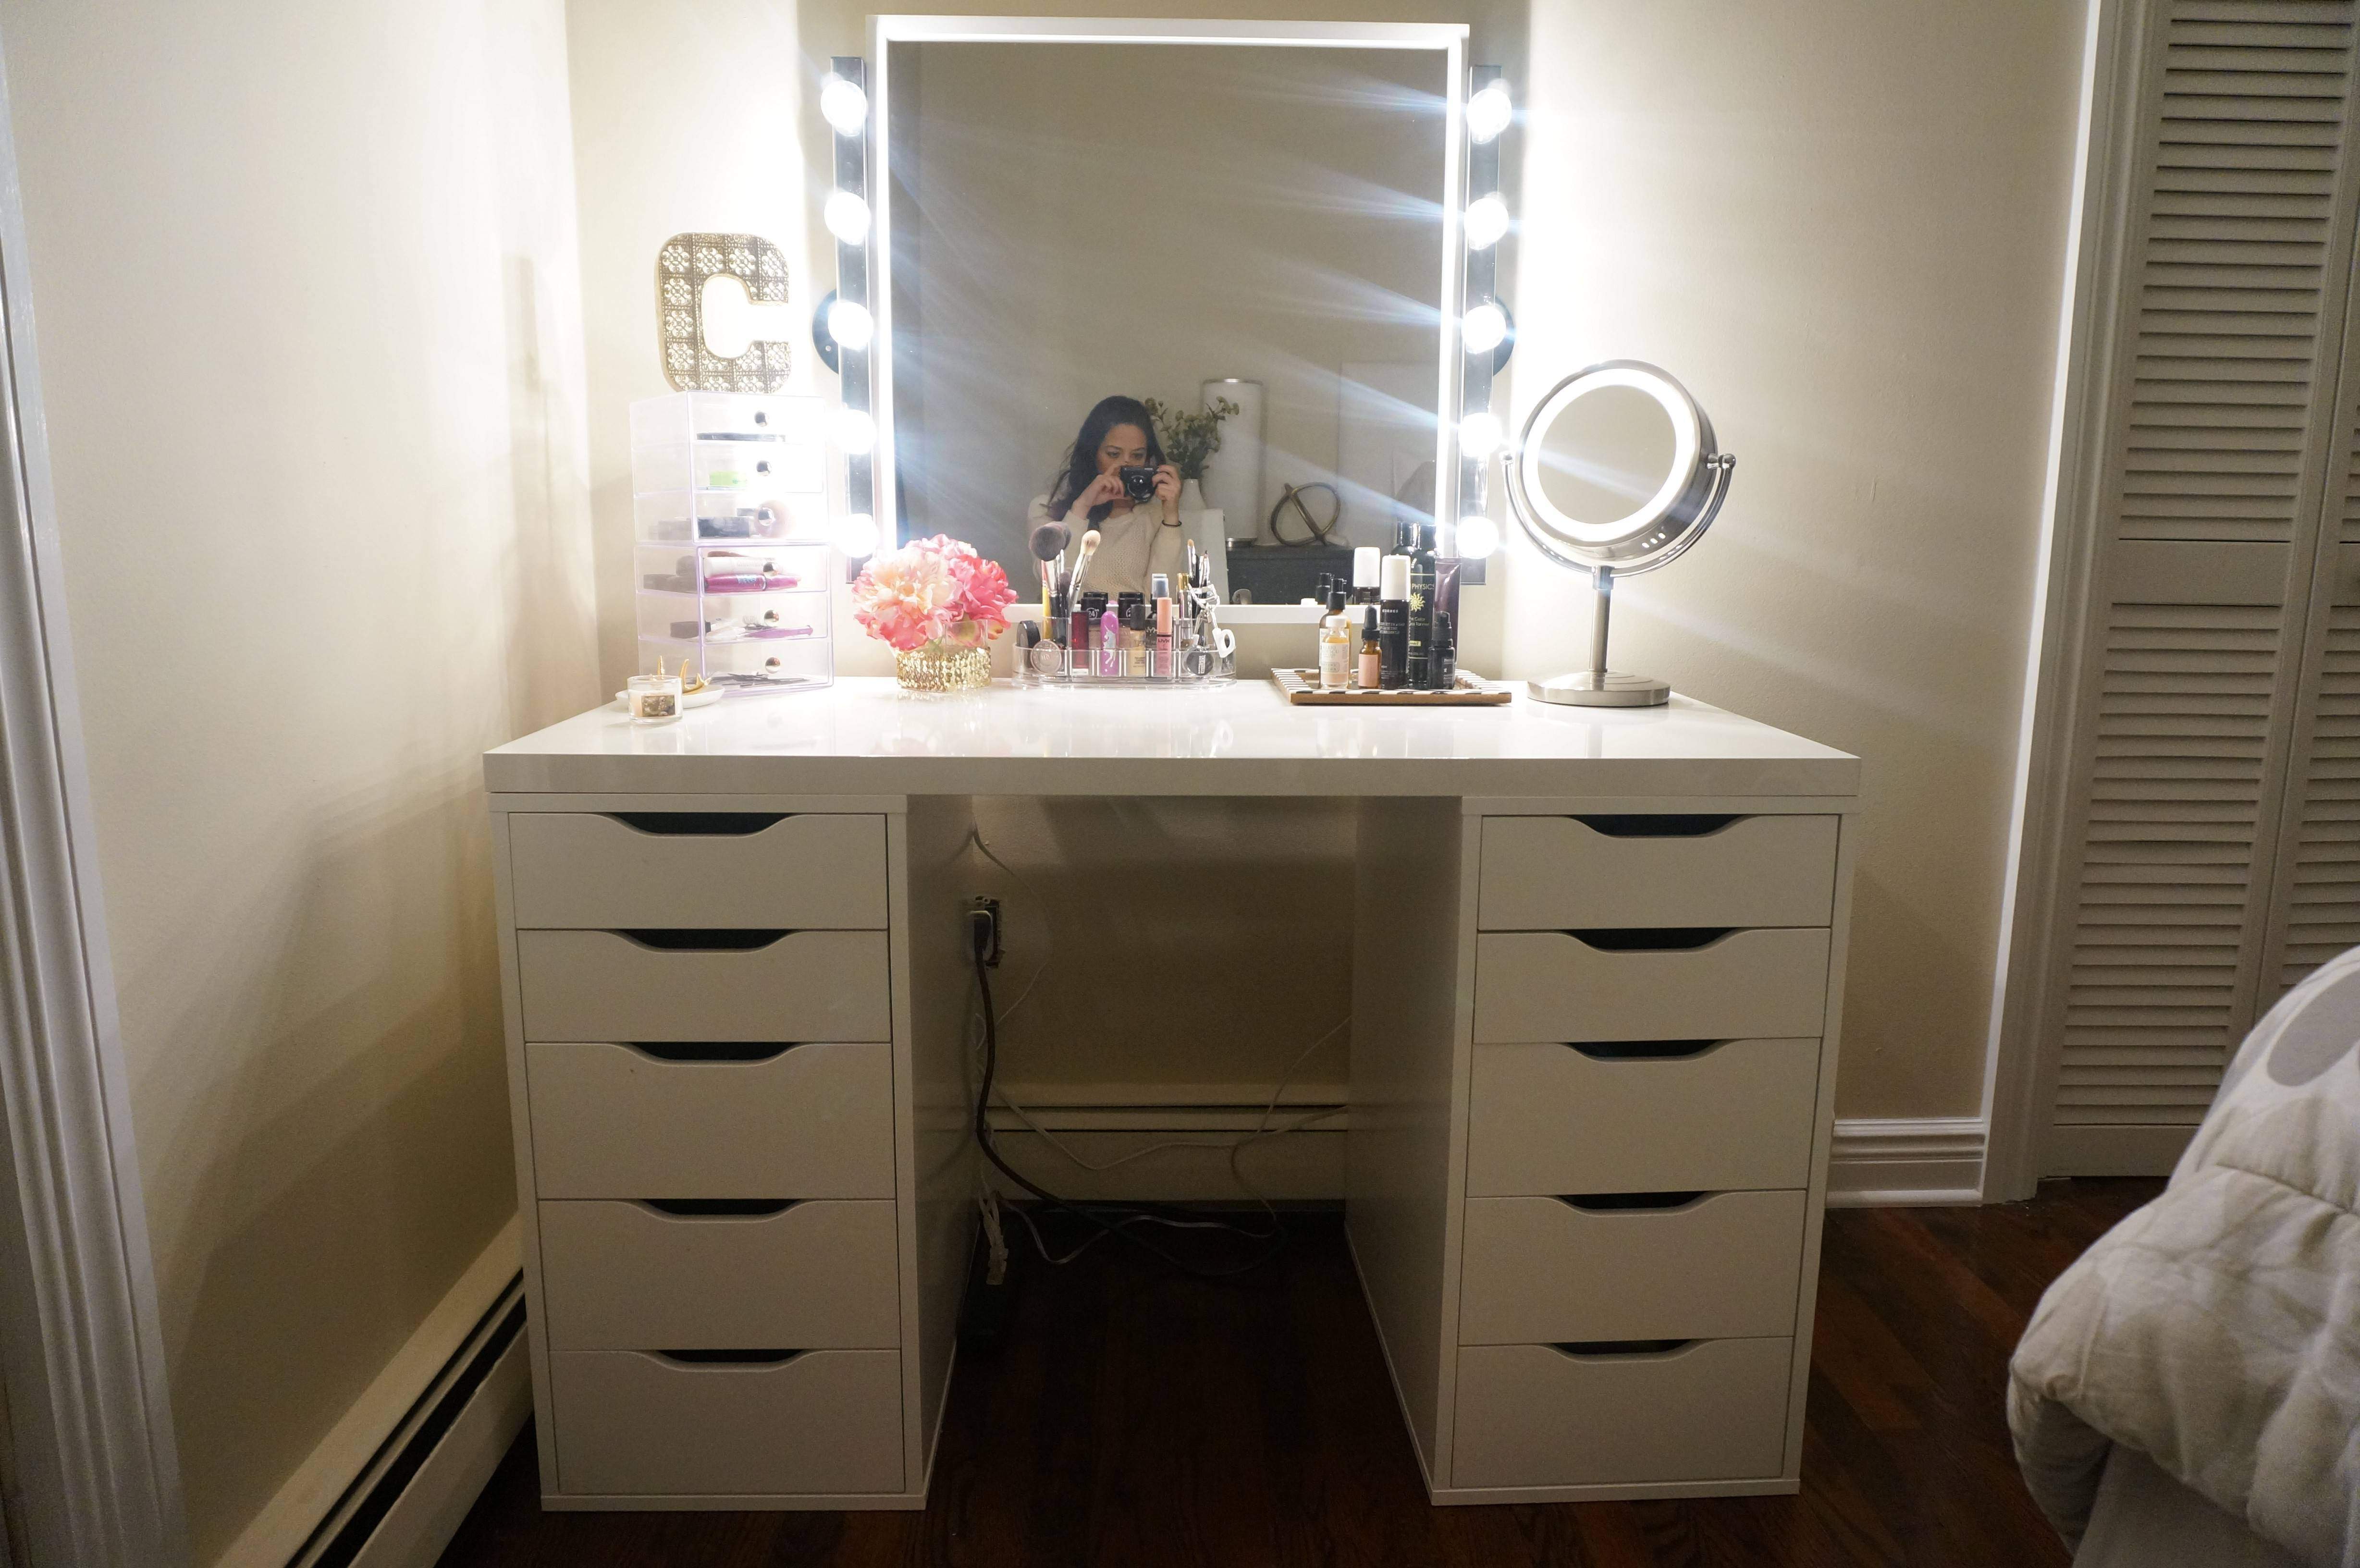 Cheap Vanity Table With Mirror And Lights | Creative Vanity Decoration inside Illuminated Dressing Table Mirrors (Image 11 of 25)